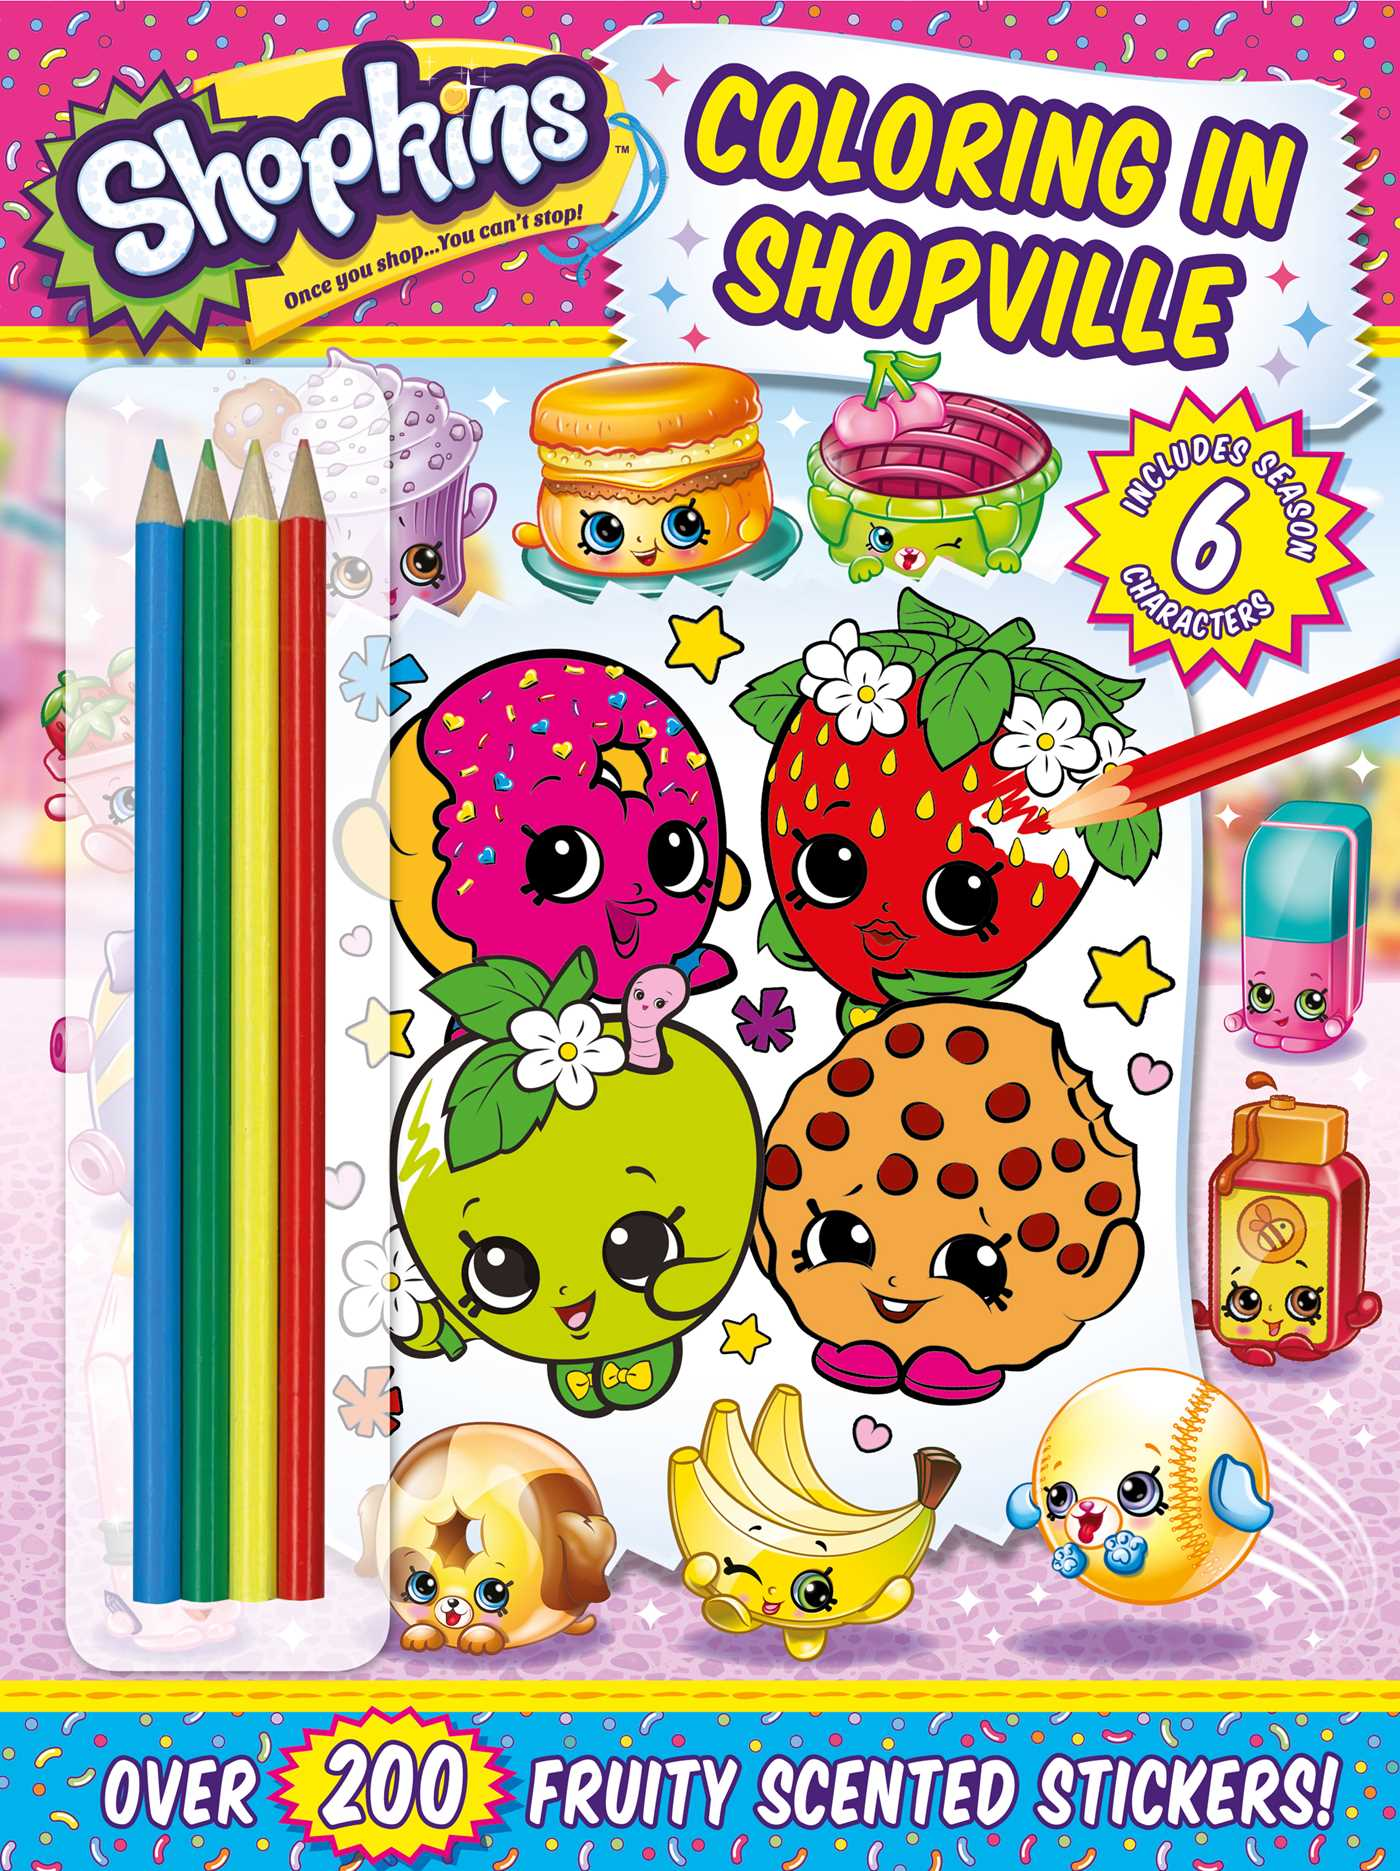 Shopkins coloring in shopville 9781499804973 hr